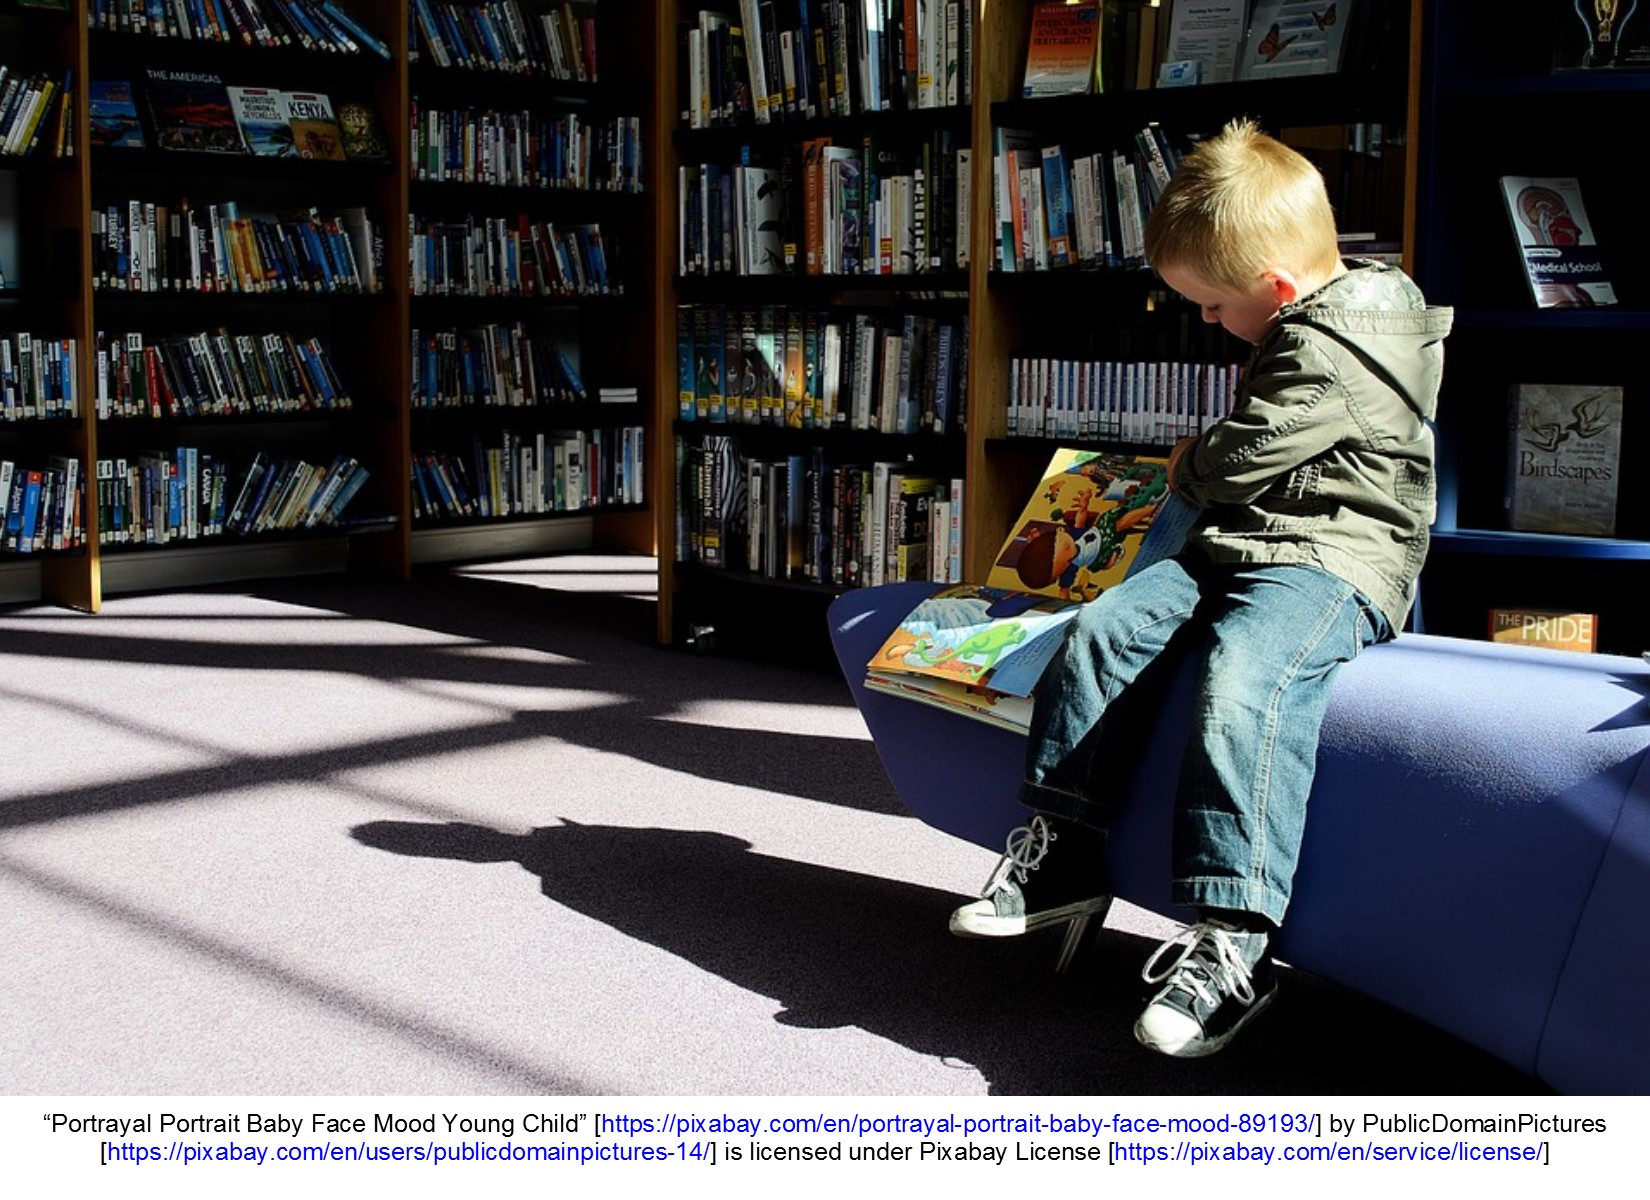 Child sitting and reading a book